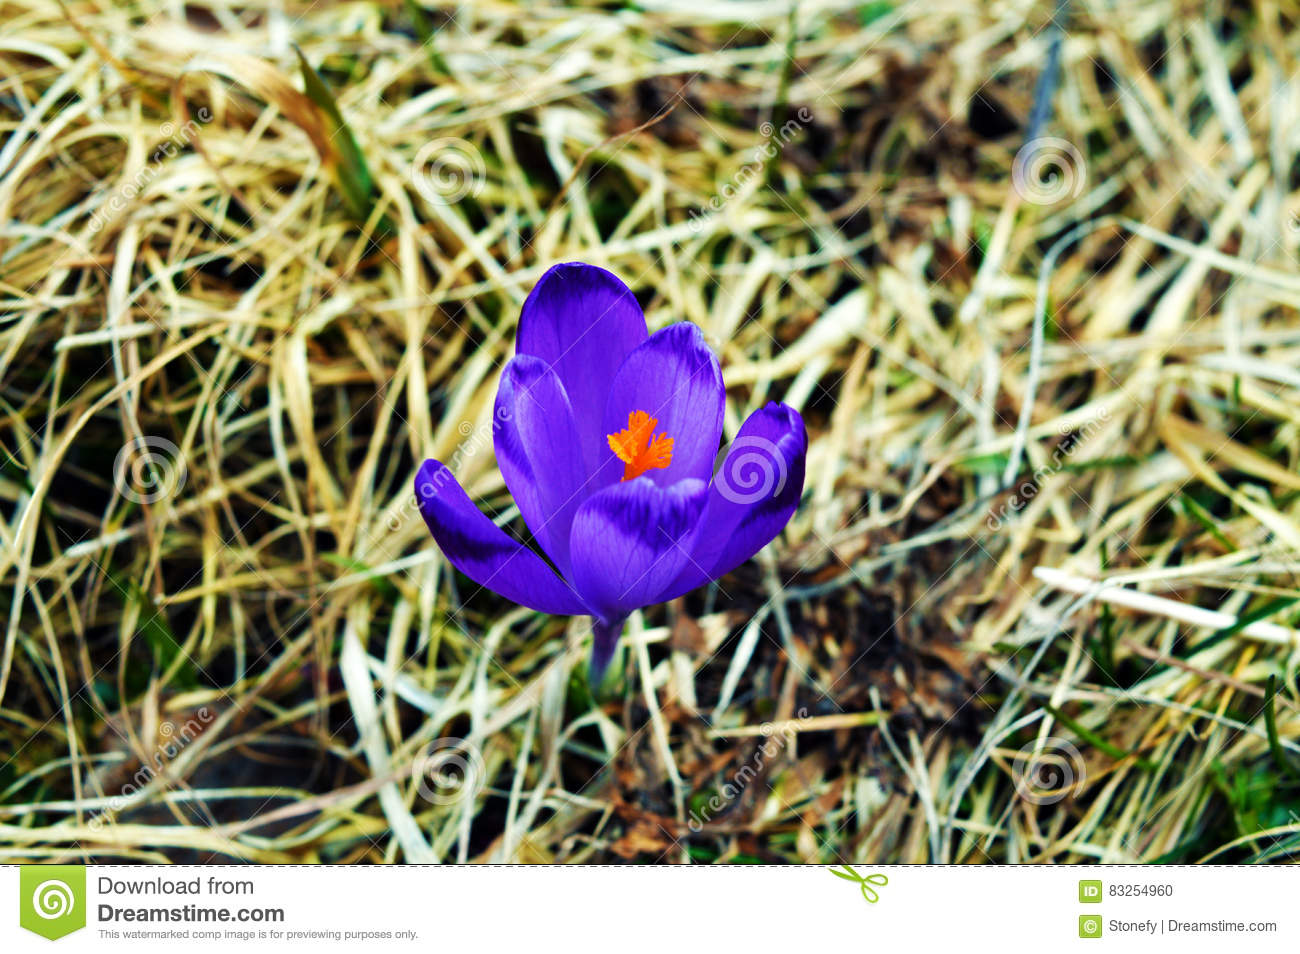 A Photograph Of An Isolated Purple Flower In Between Weeds Stock